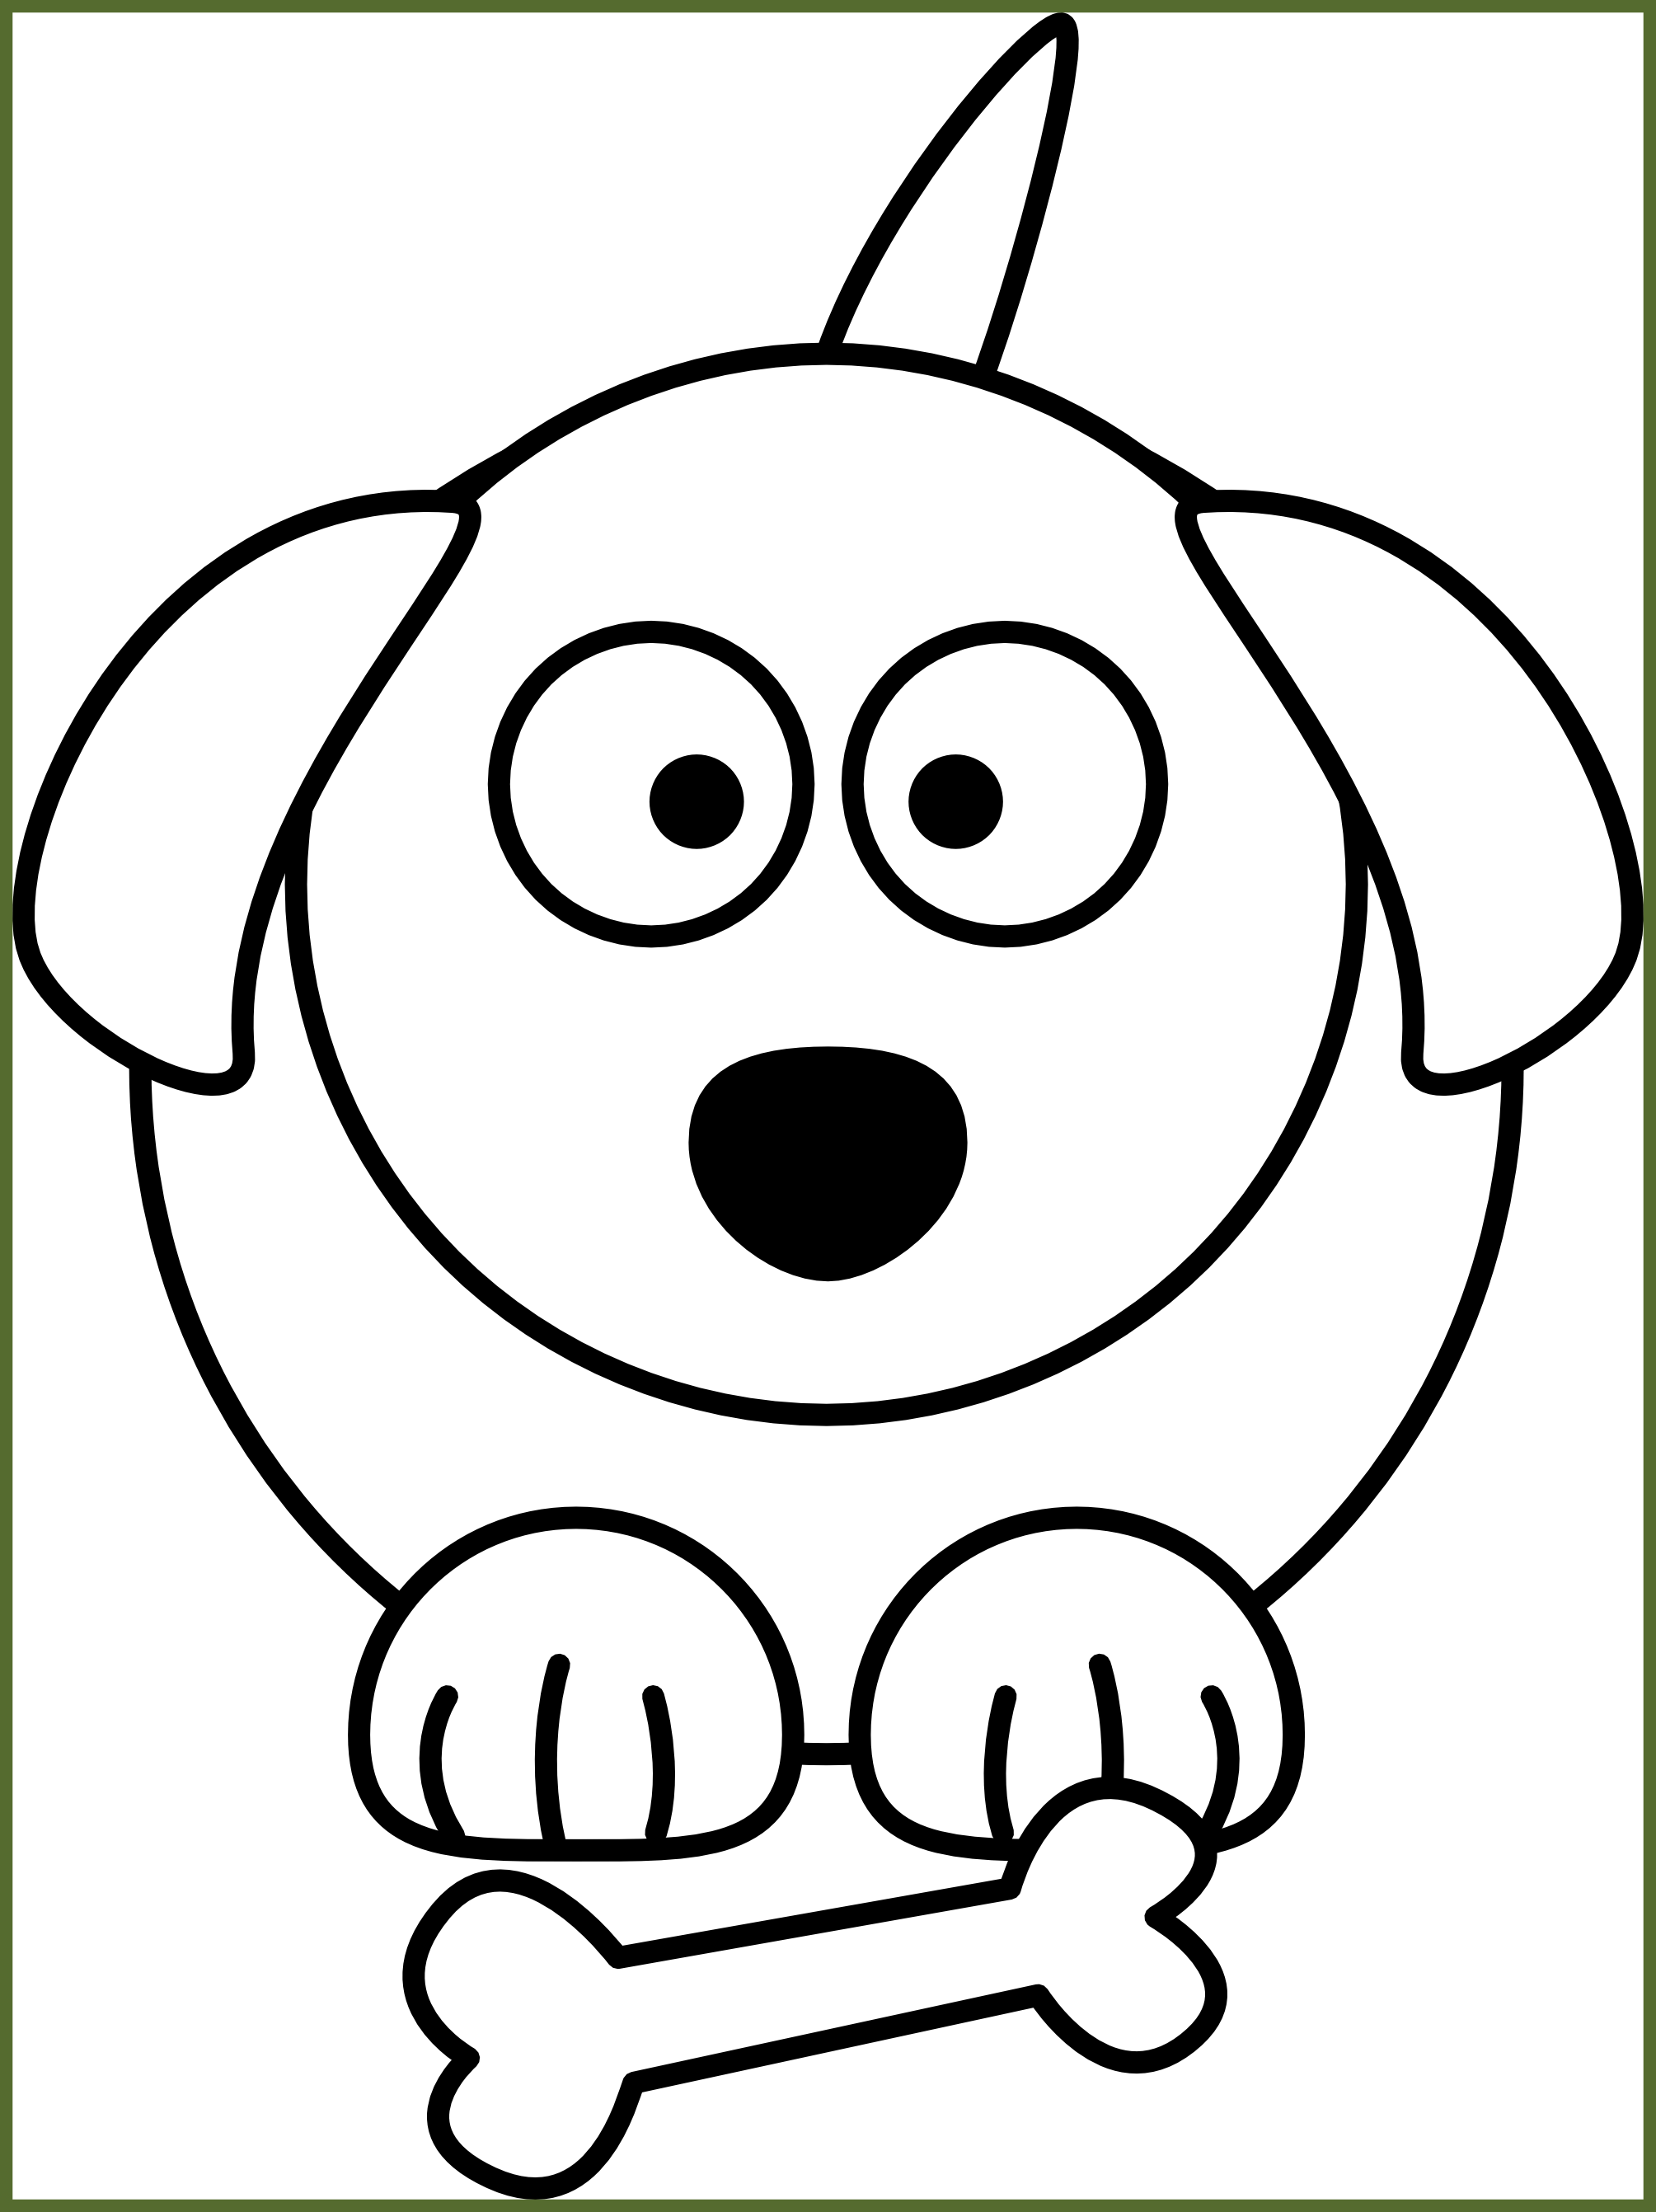 Dogs vector line. Cute dog png royalty